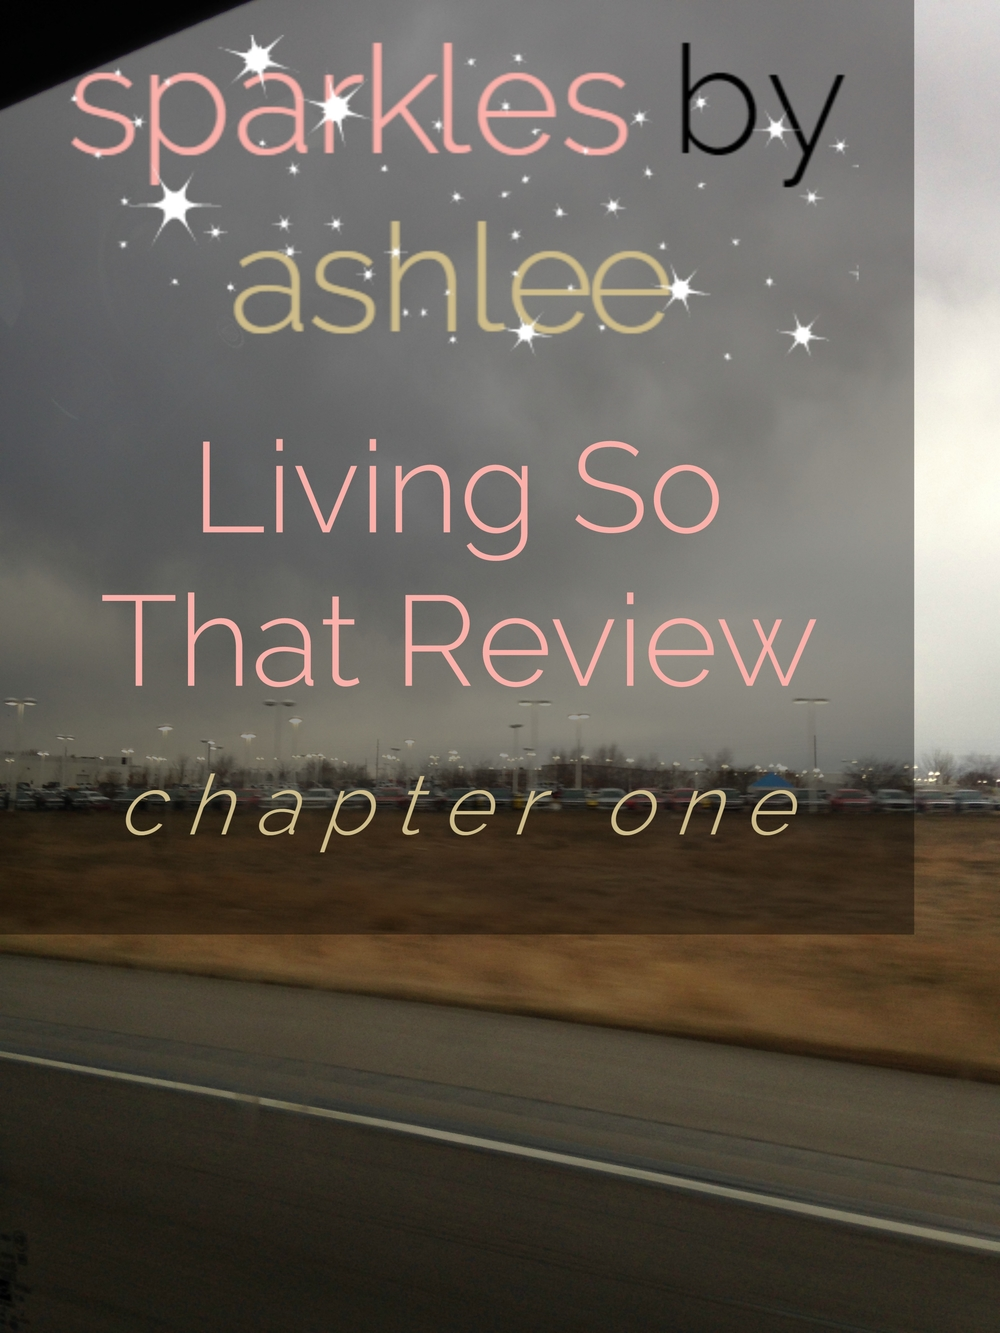 Living-So-That-Chapter-One-in-Review-Why-Jesus-Came-Sparkles-by-Ashlee.jpg